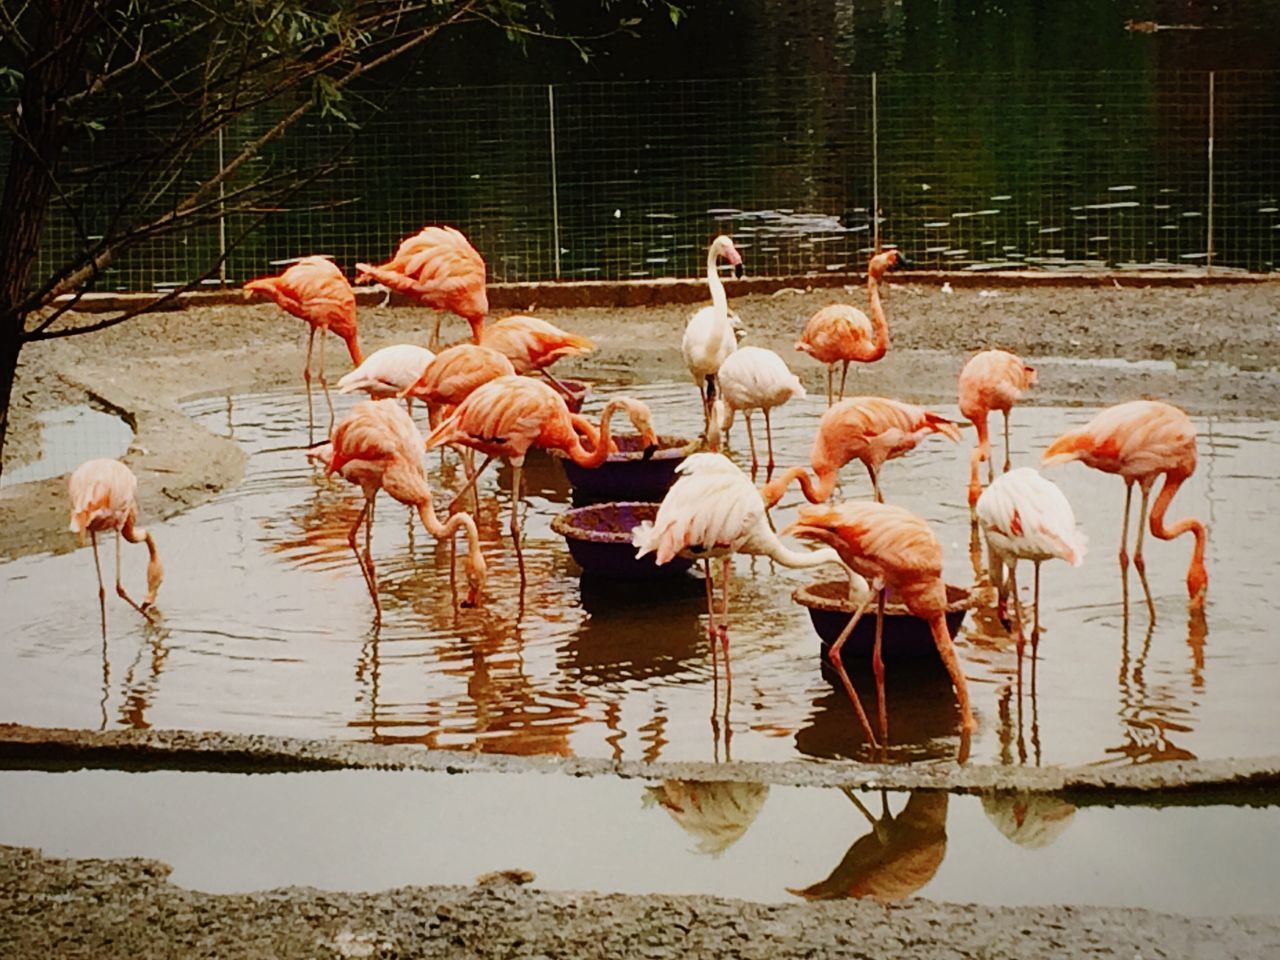 flamingo, animal themes, bird, animals in the wild, nature, large group of animals, animal wildlife, no people, water, day, outdoors, flock of birds, beauty in nature